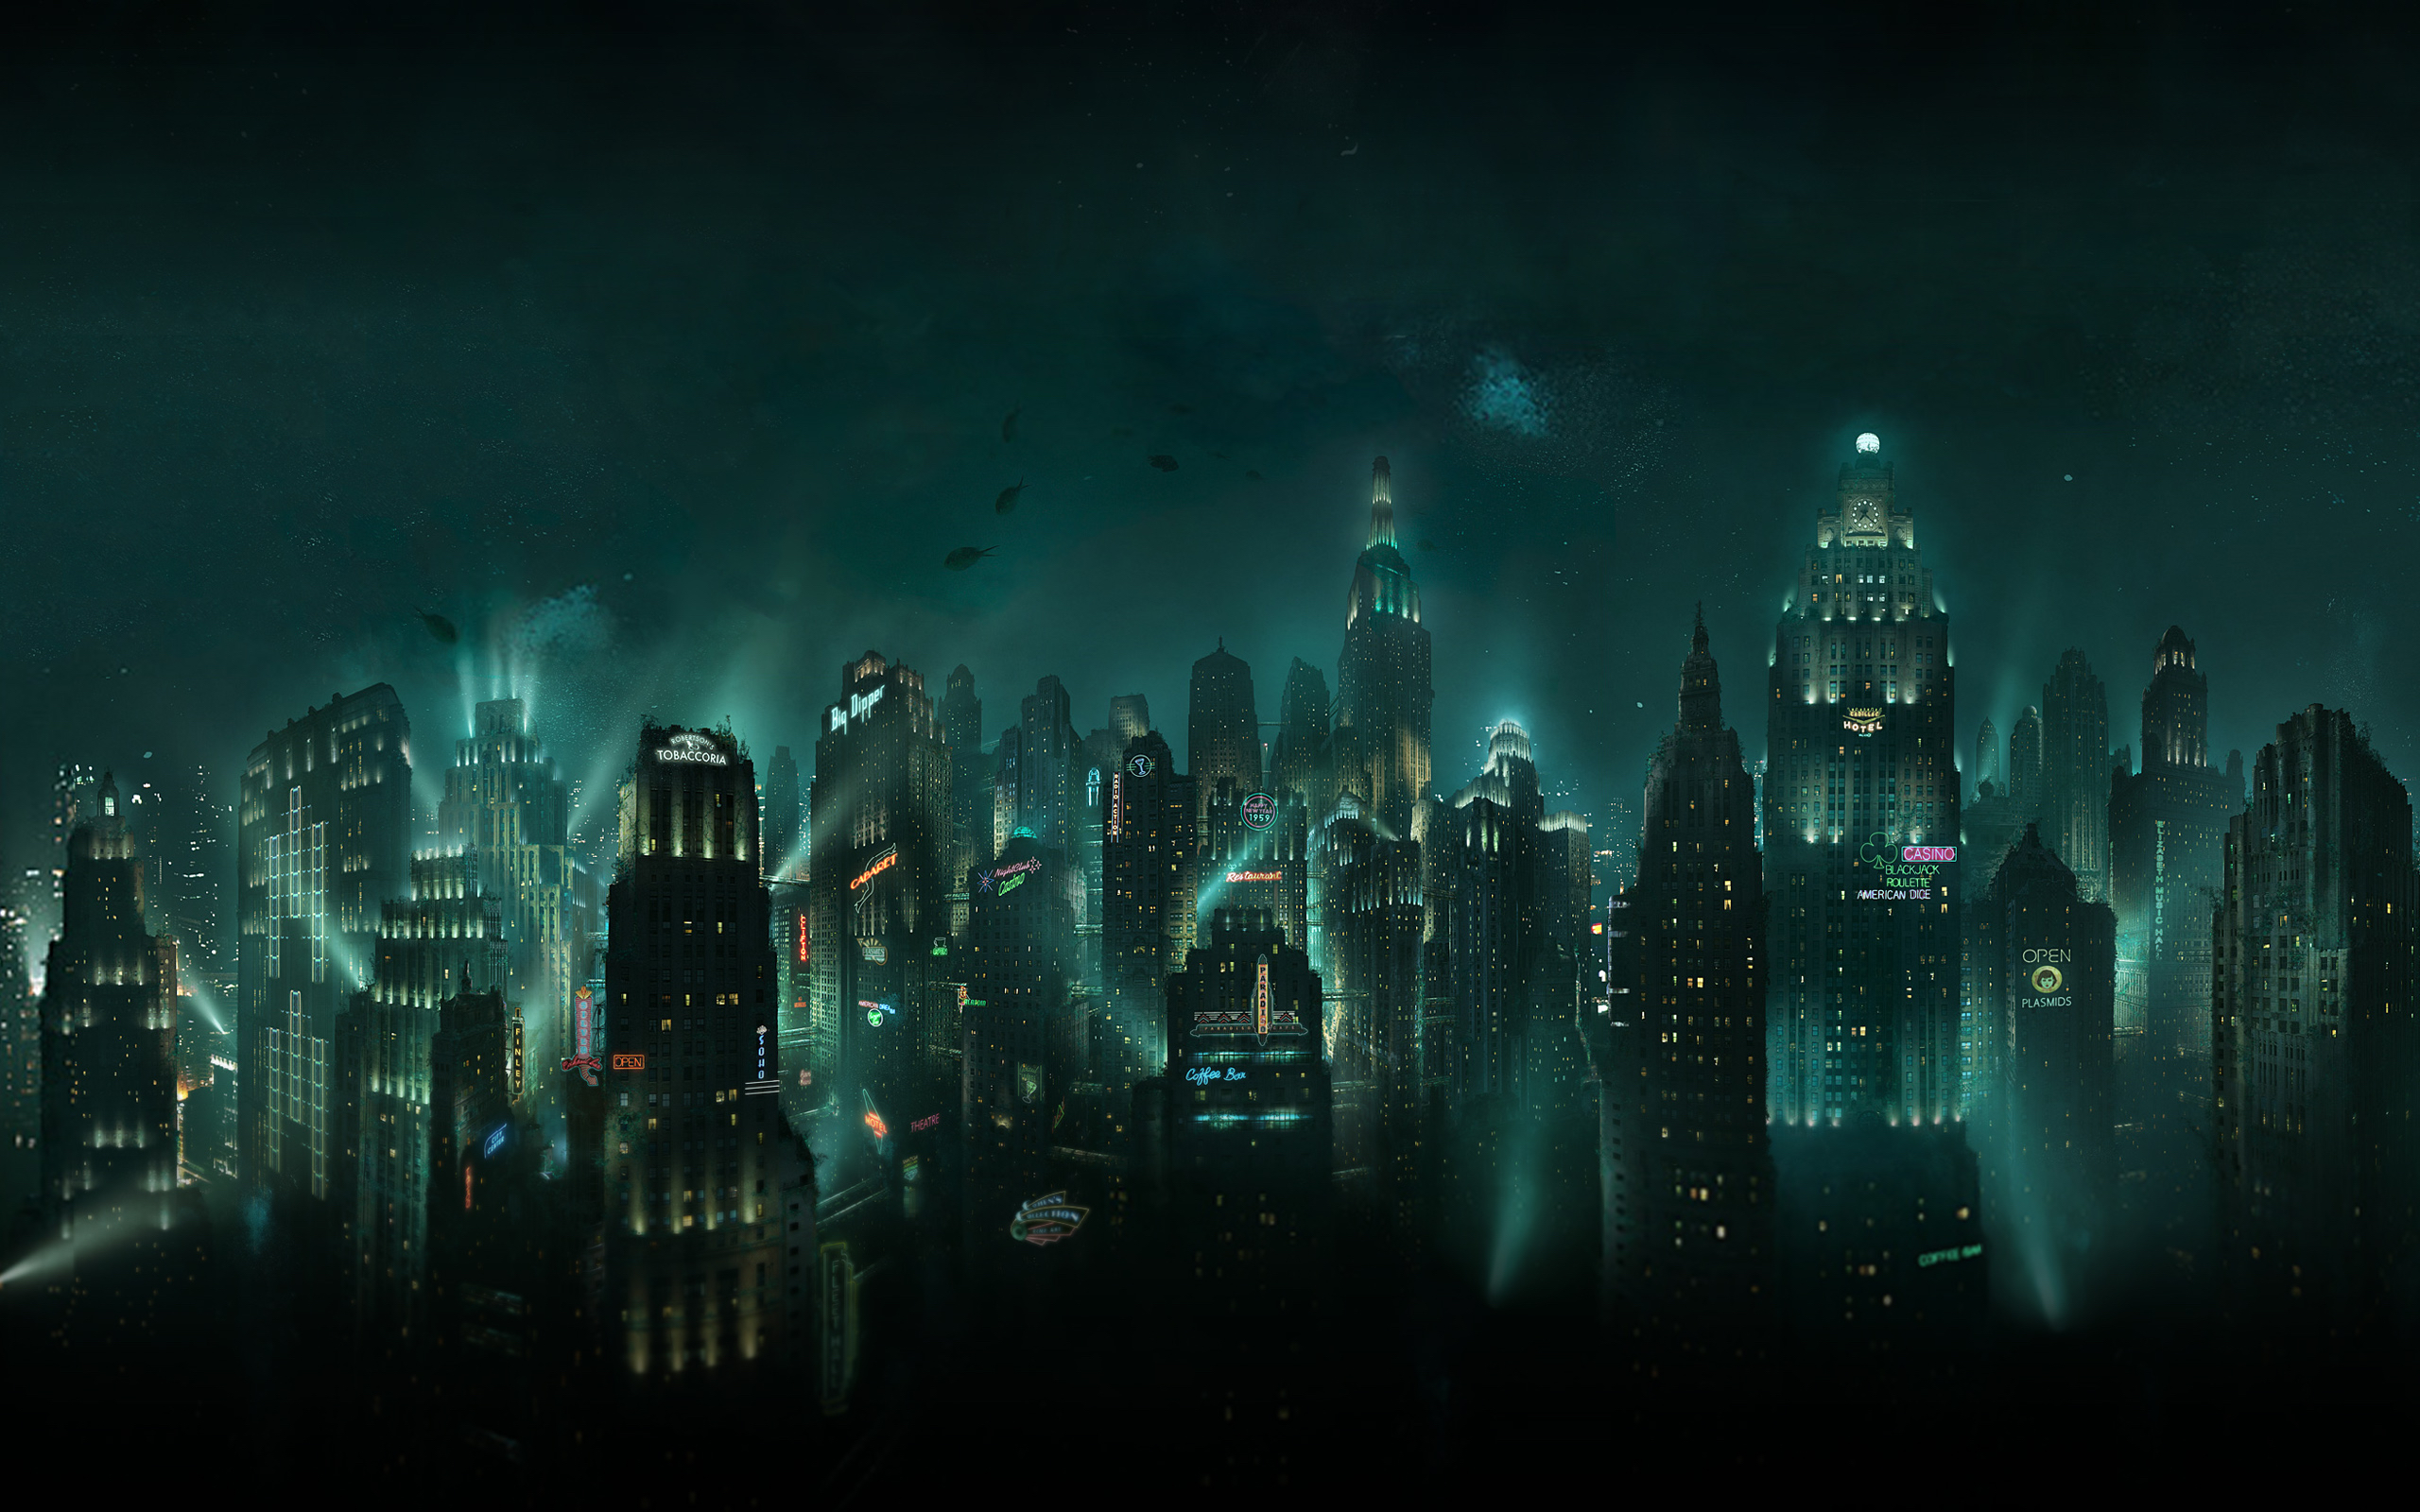 The underwater city of Rapture